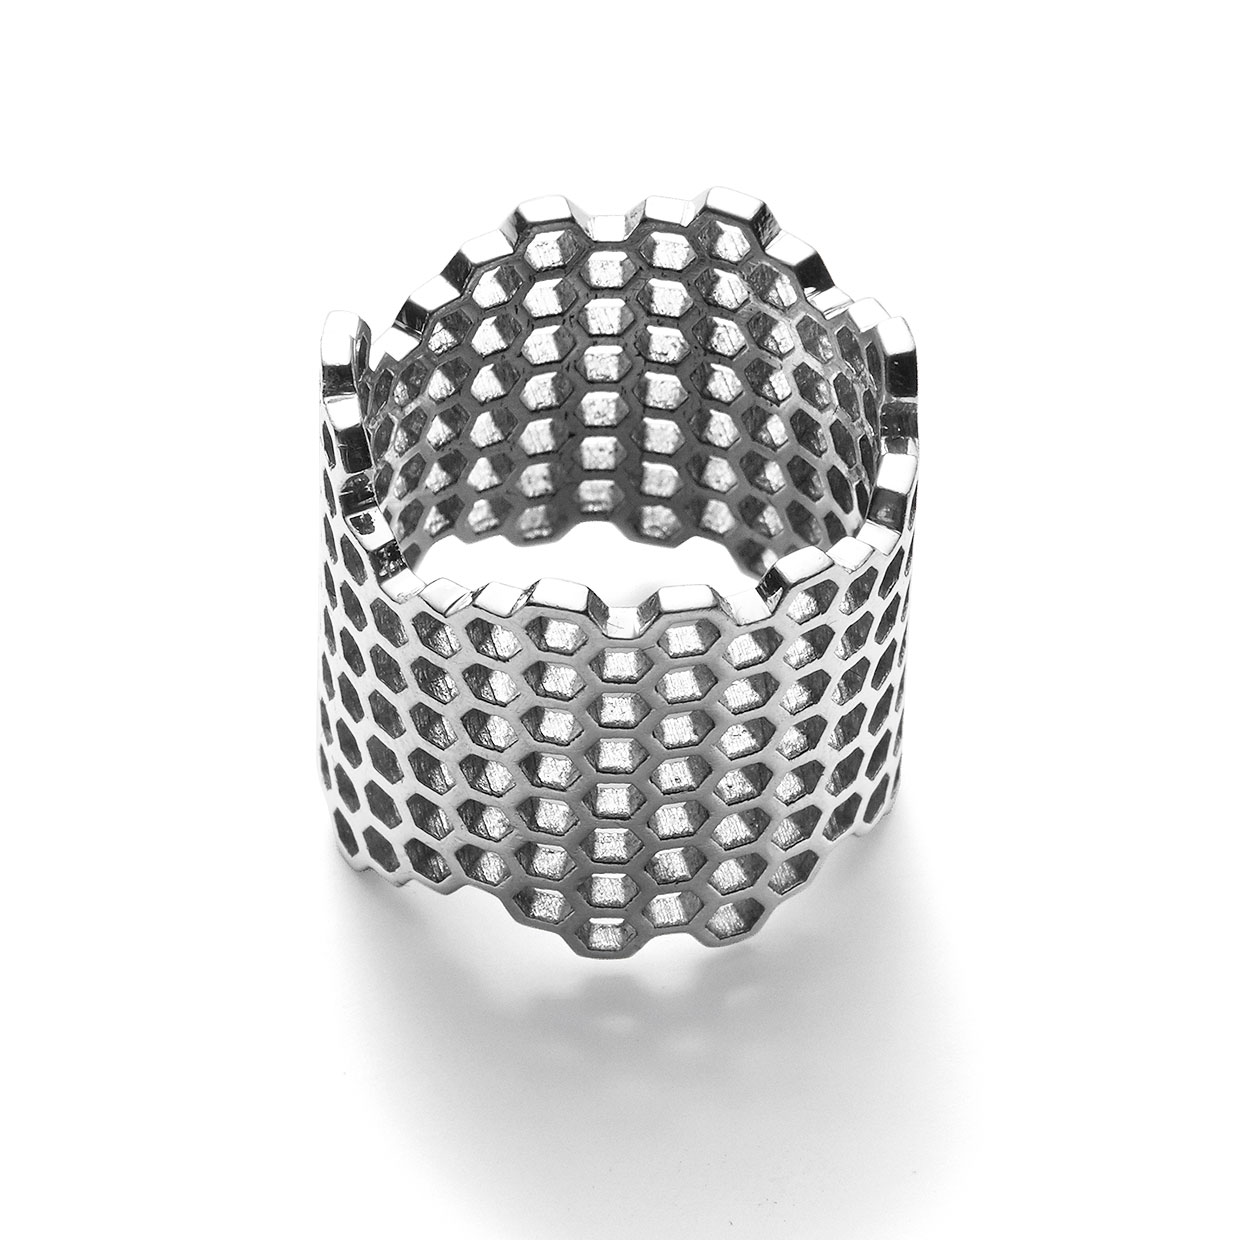 Jagged Honeycomb Ring